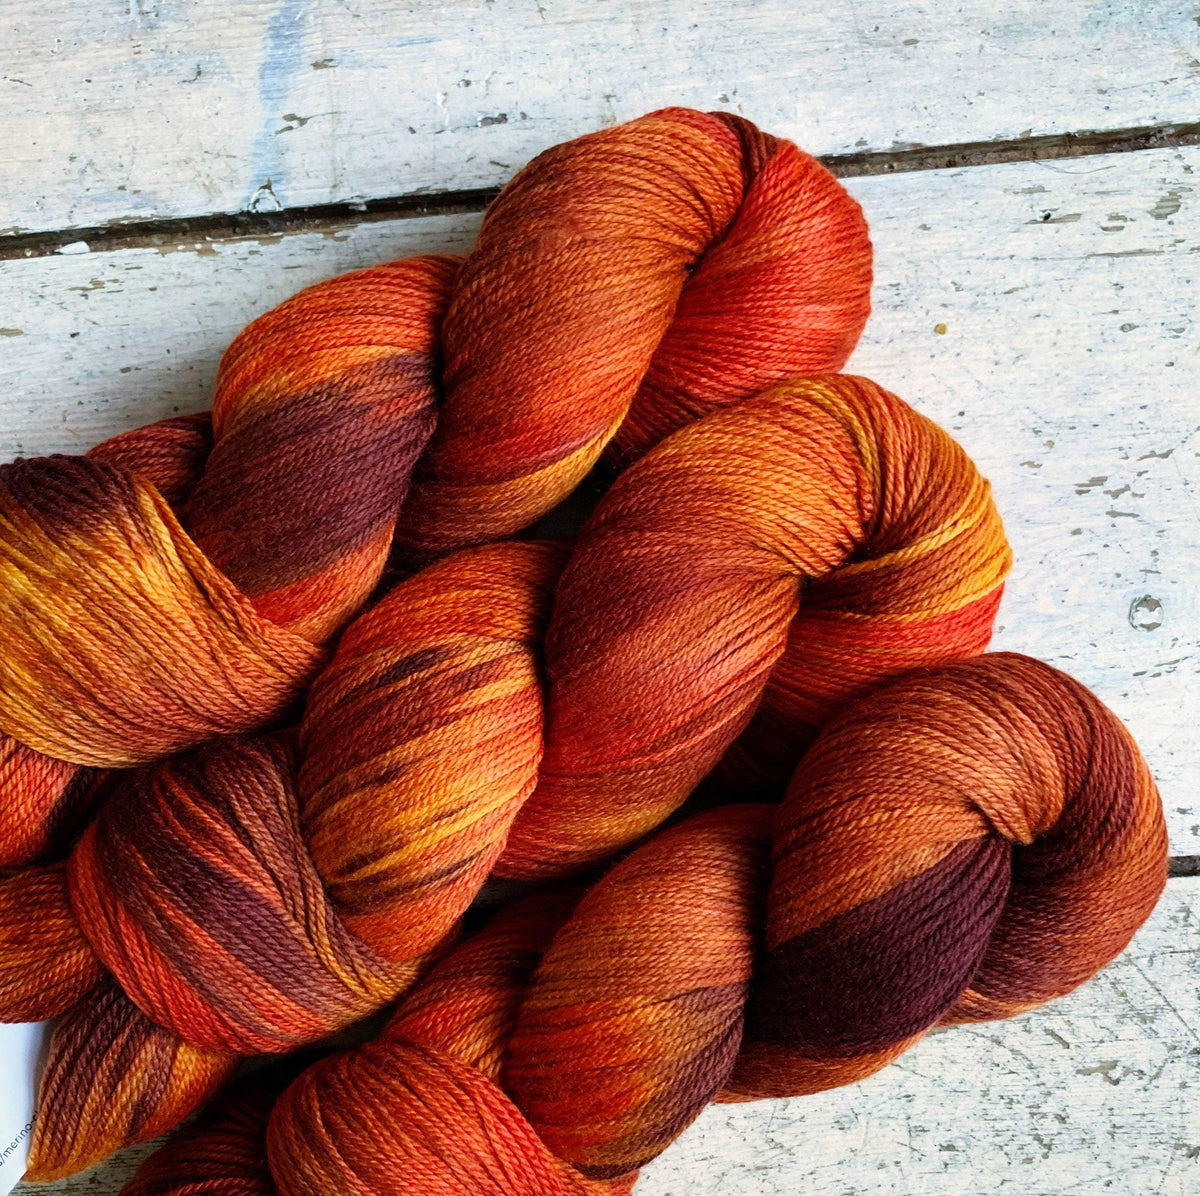 Merino Cloud Artyarns Yarn 511 Maple Fall